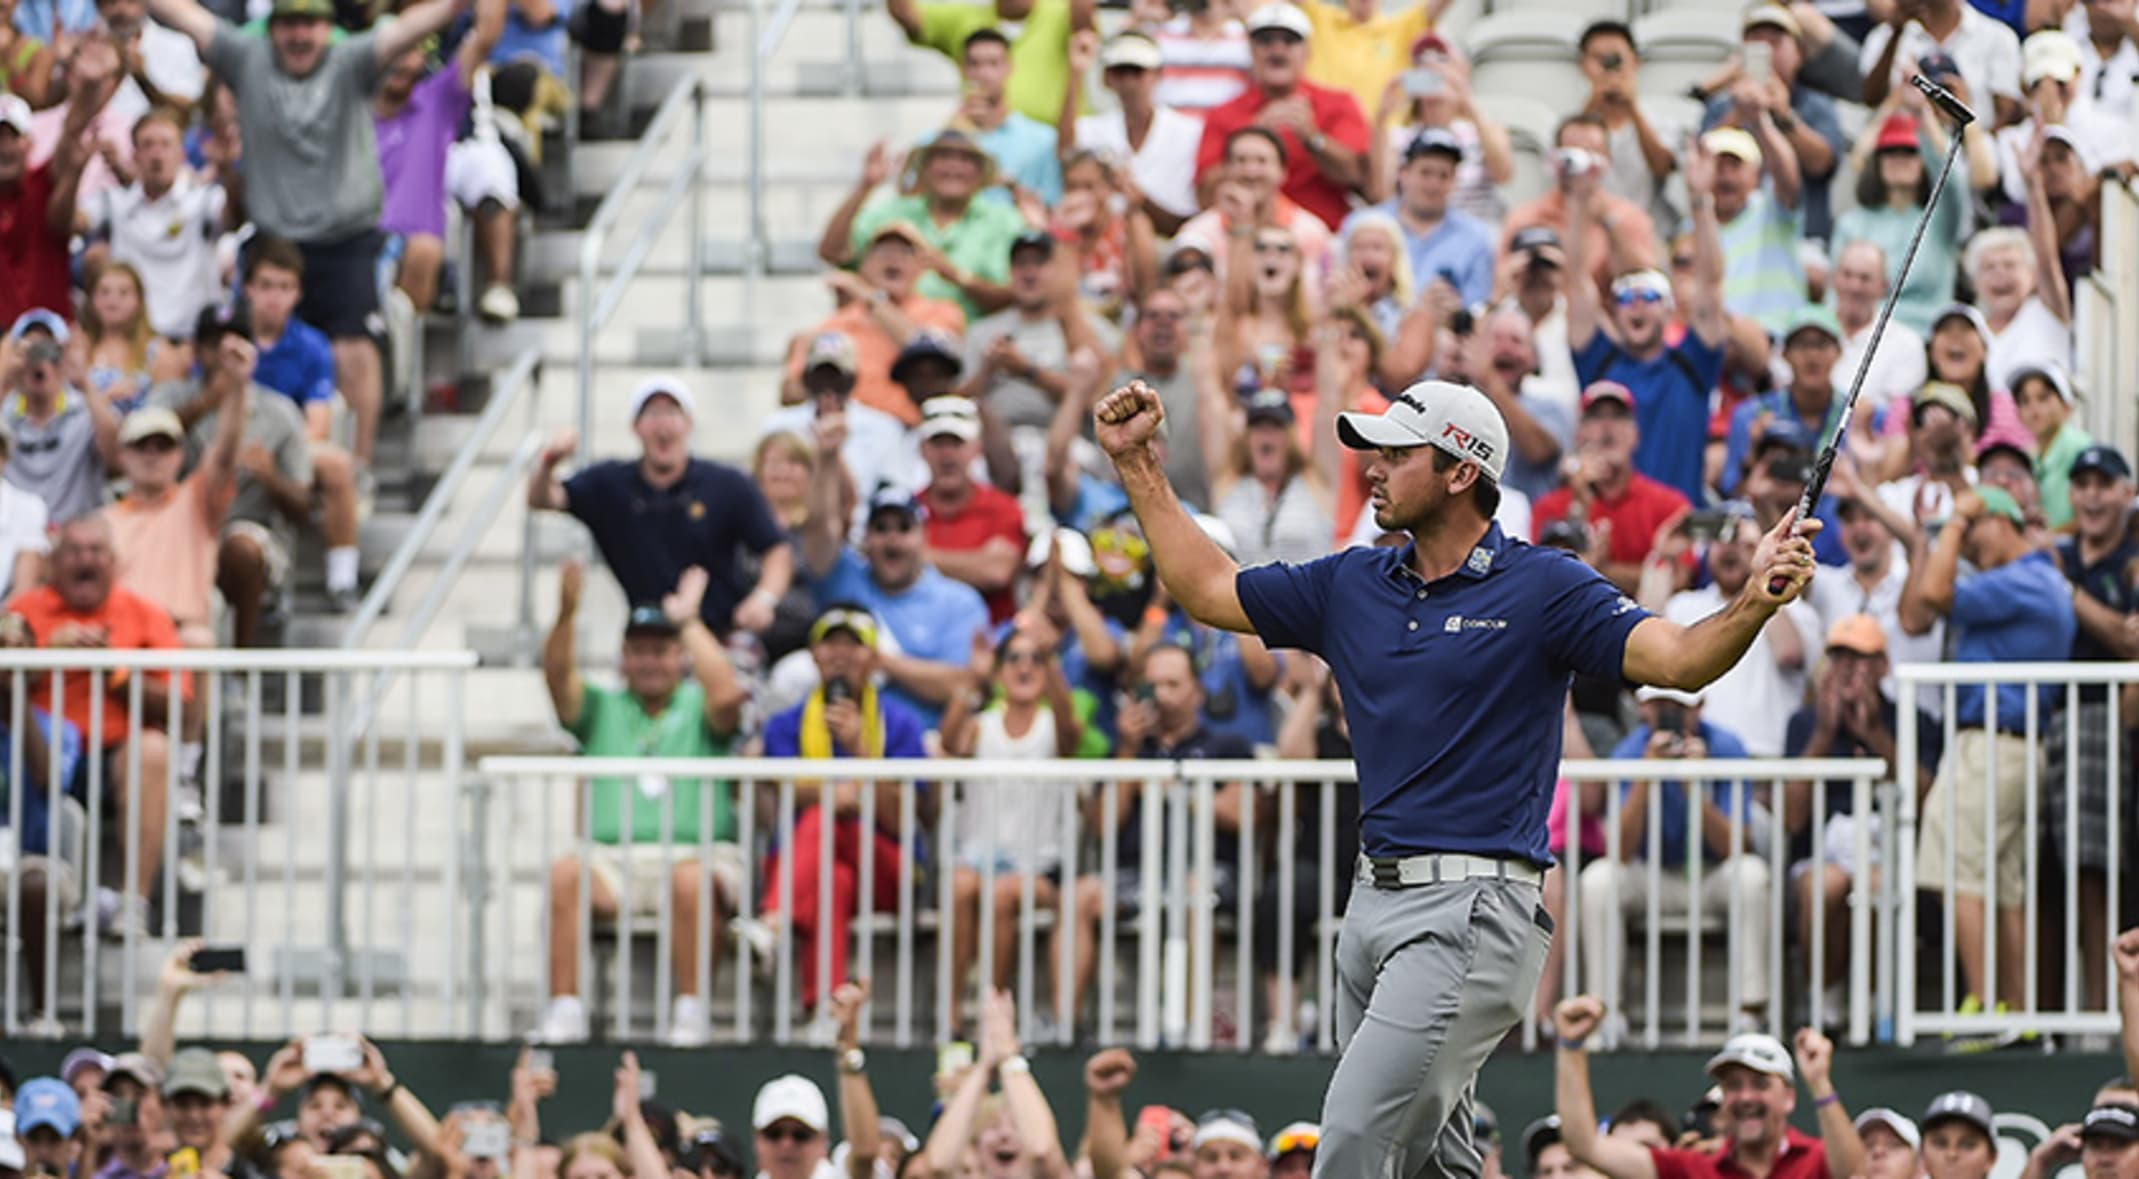 Photo Gallery: The Barclays, Final Round